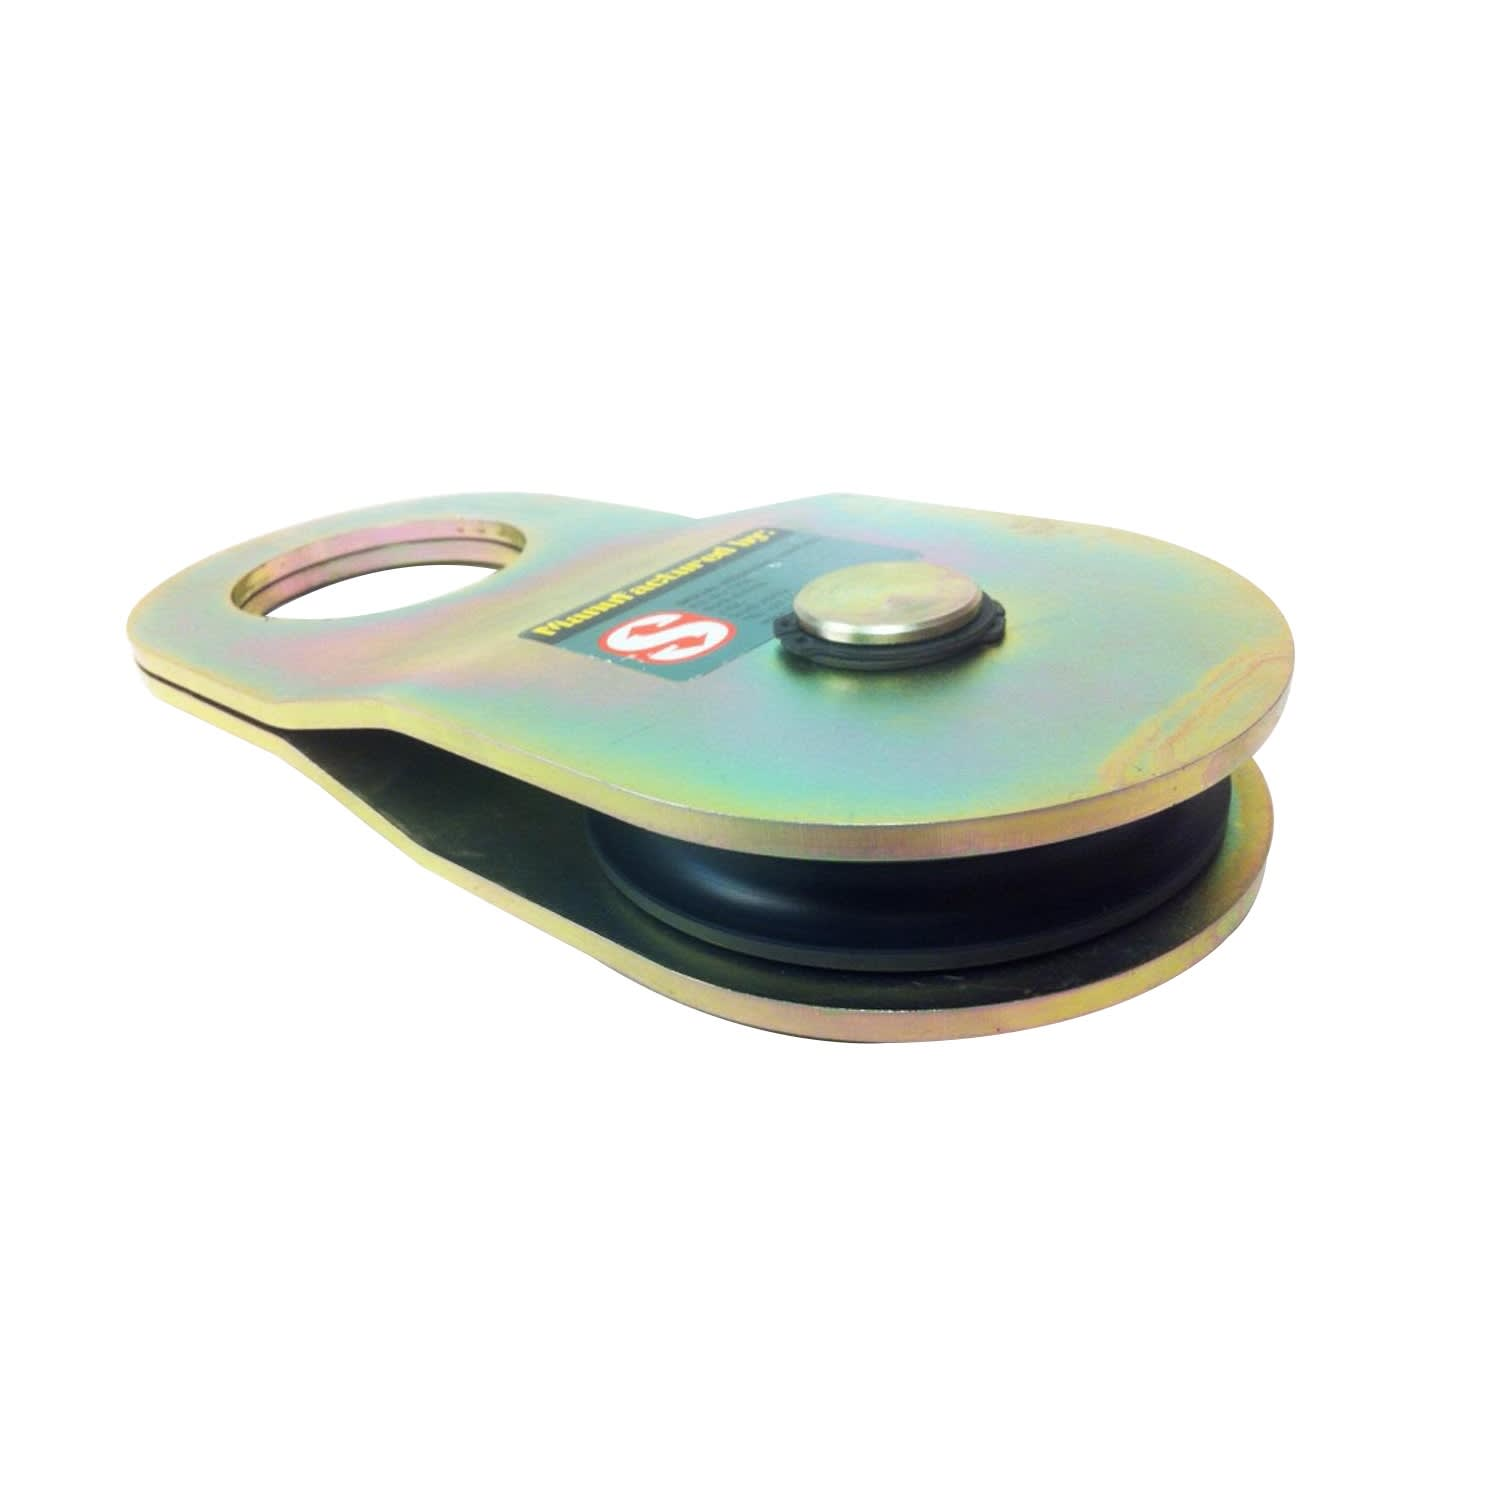 SecureTech Heavy Duty Snatch Block